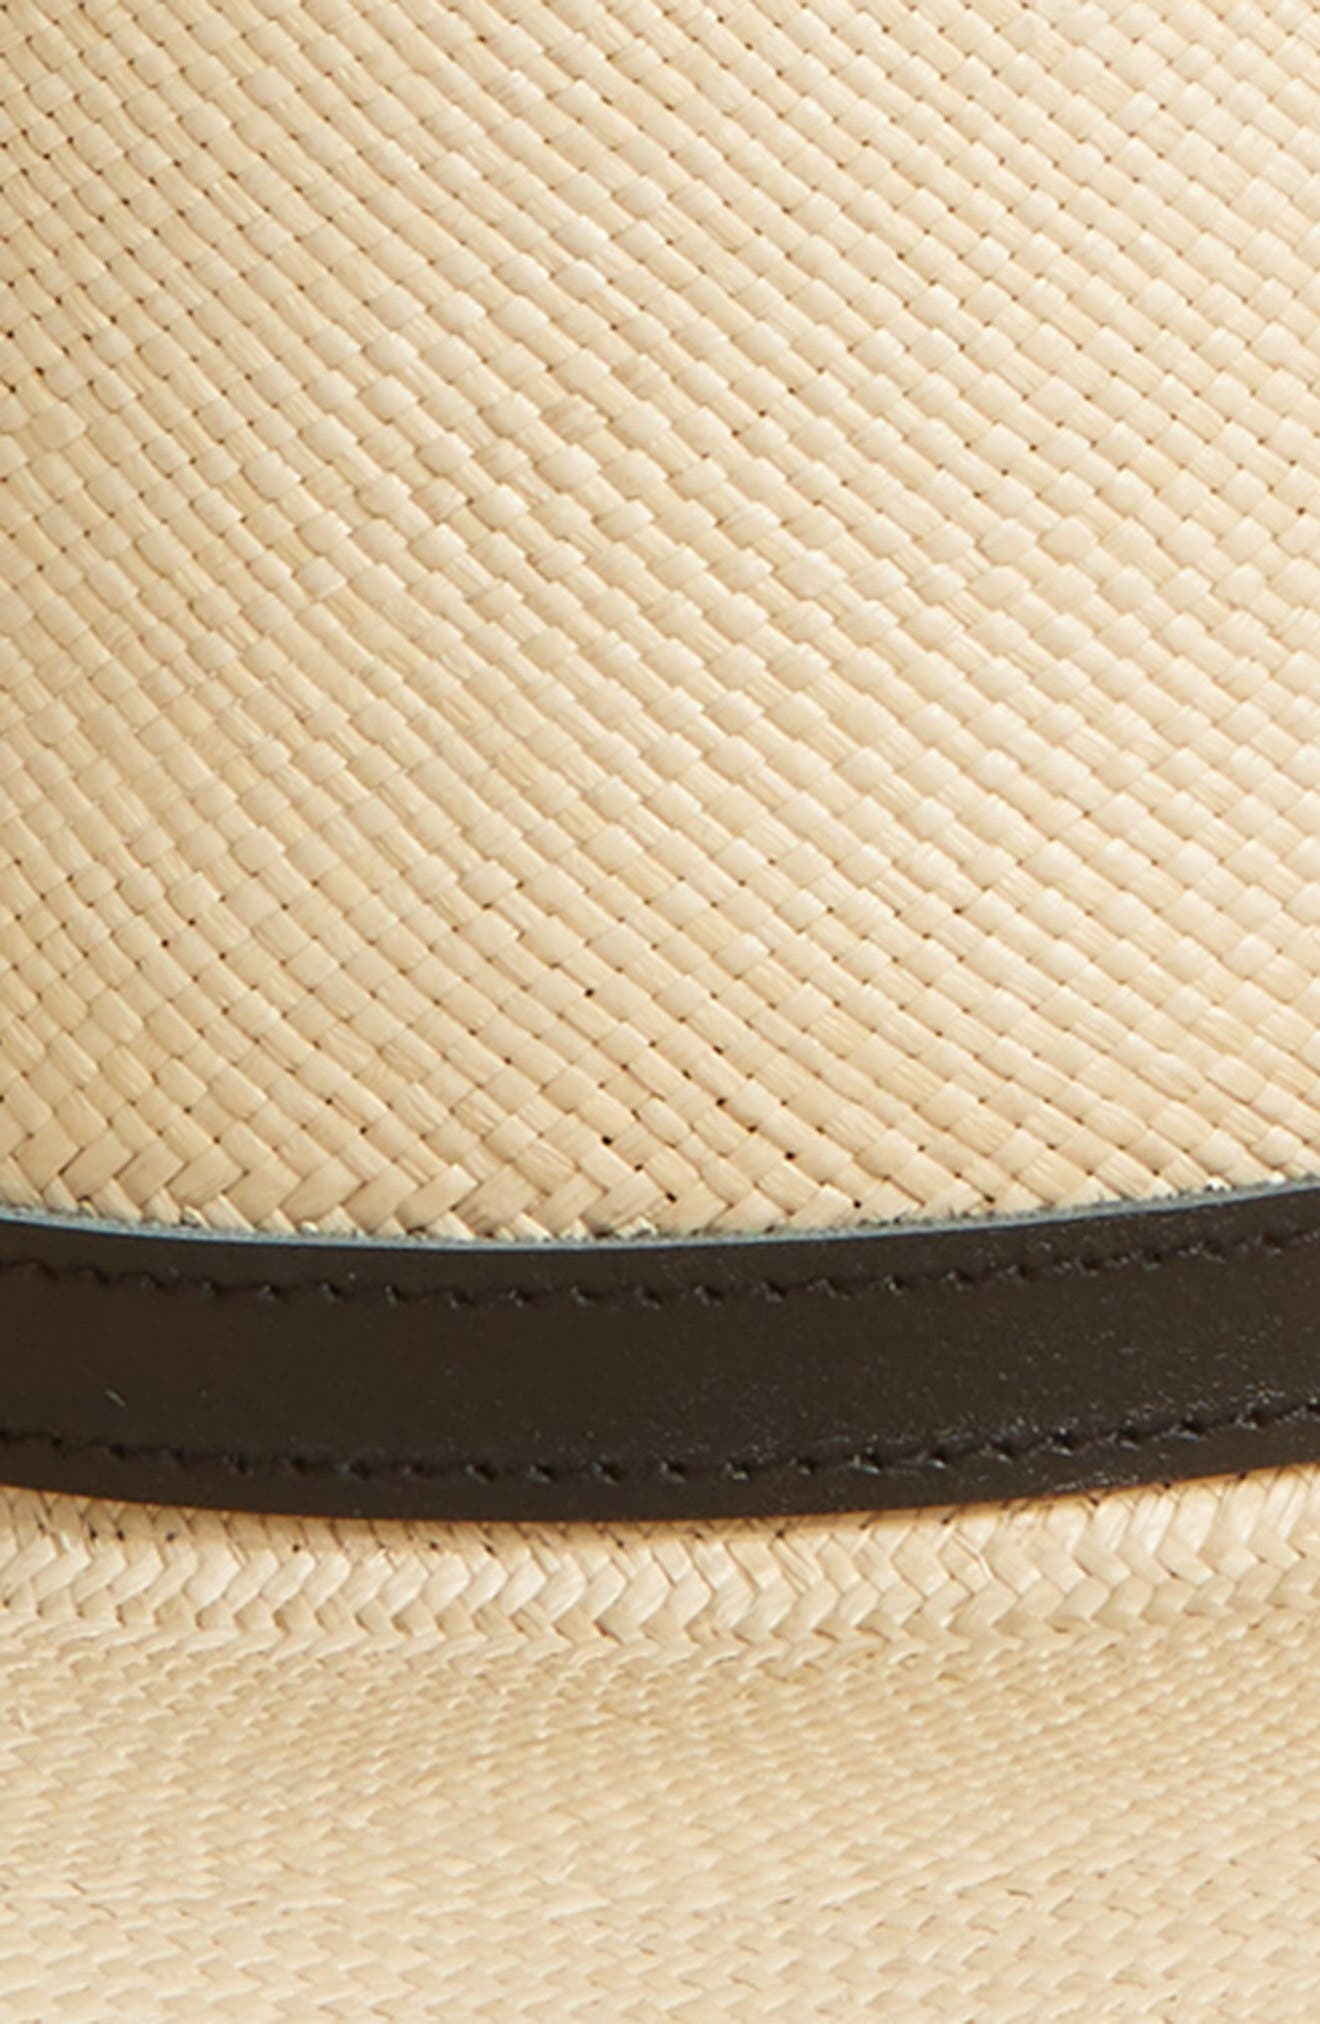 Woven Panama Straw Hat,                             Alternate thumbnail 2, color,                             TANNED